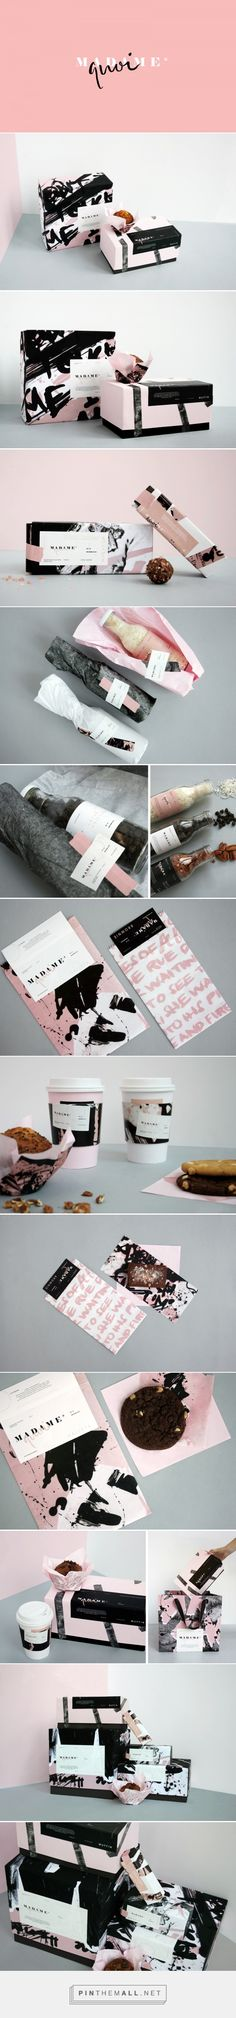 Madame Quoi - Packaging of the World - Creative Package Design Gallery…